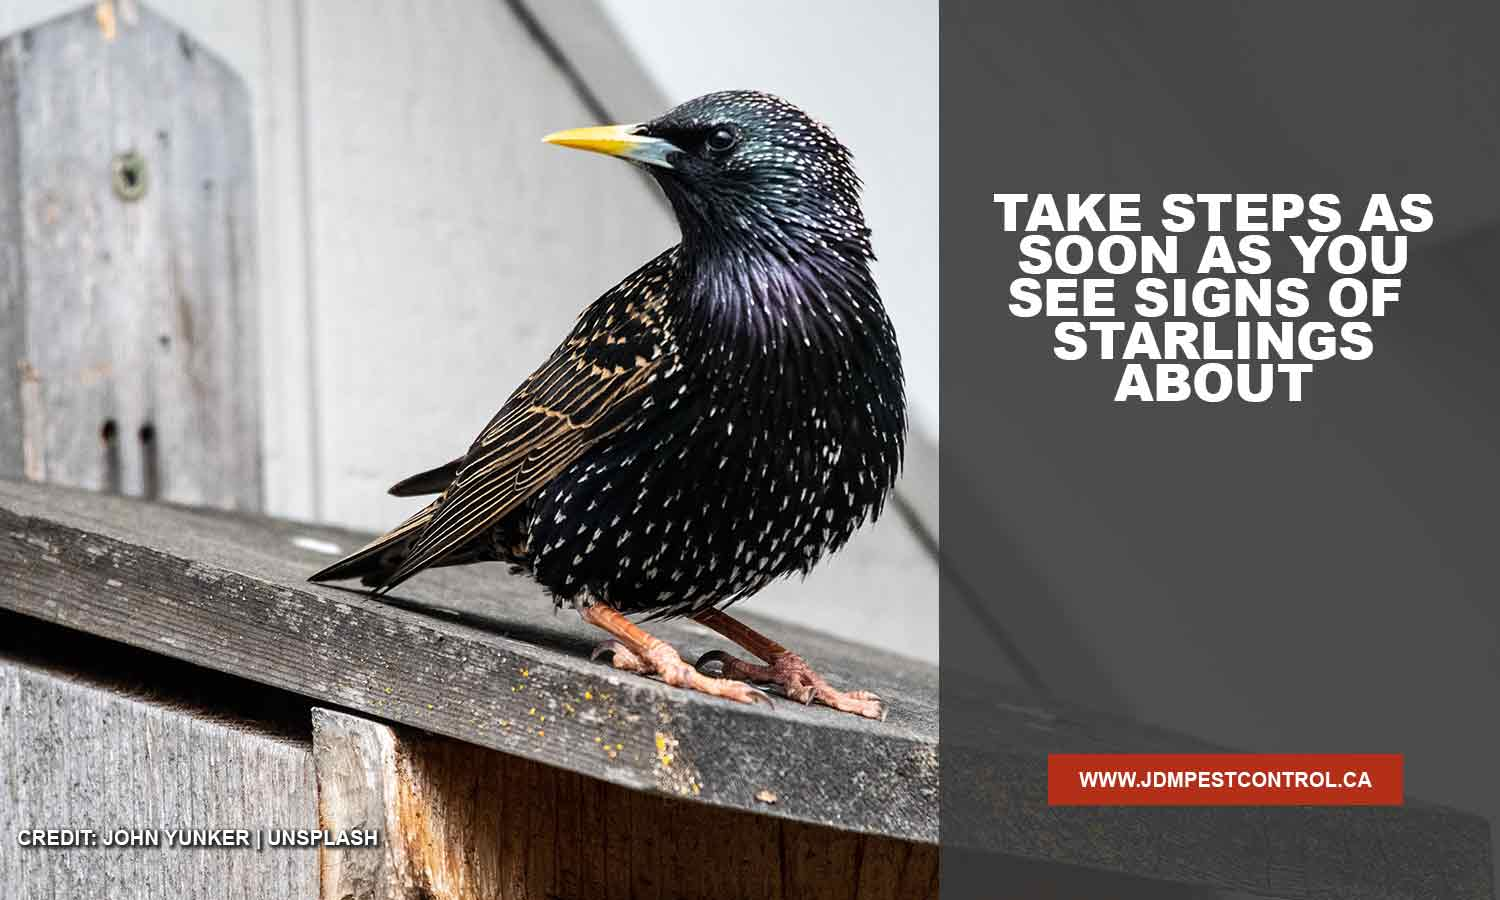 Take steps as soon as you see signs of starlings about